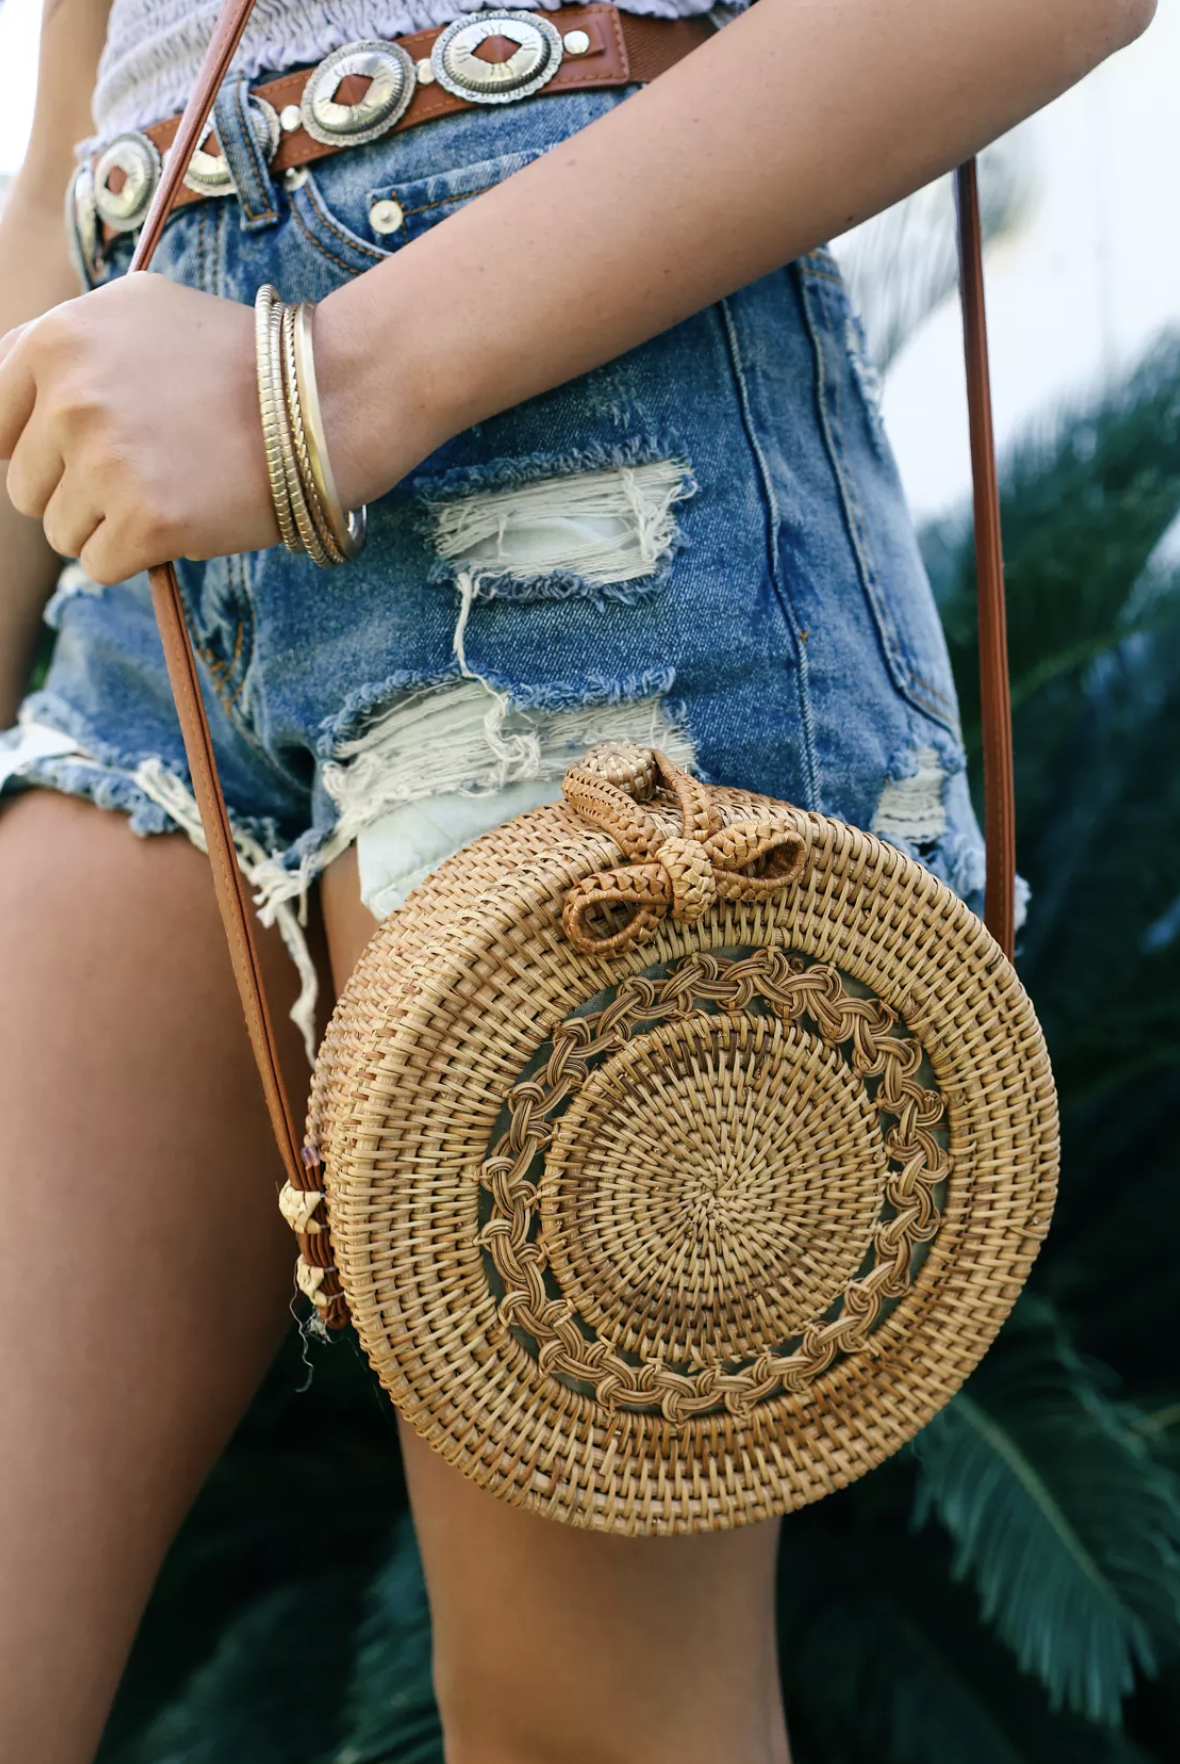 Stroll the sandy shores with the Port Costa Tan Round Woven Purse! Woven rattan shapes this unique, woven round tote with a cute cut-out design. Matching loop closure opens to a roomy interior, while the long genuine leather shoulder strap adds a touch of luxe.